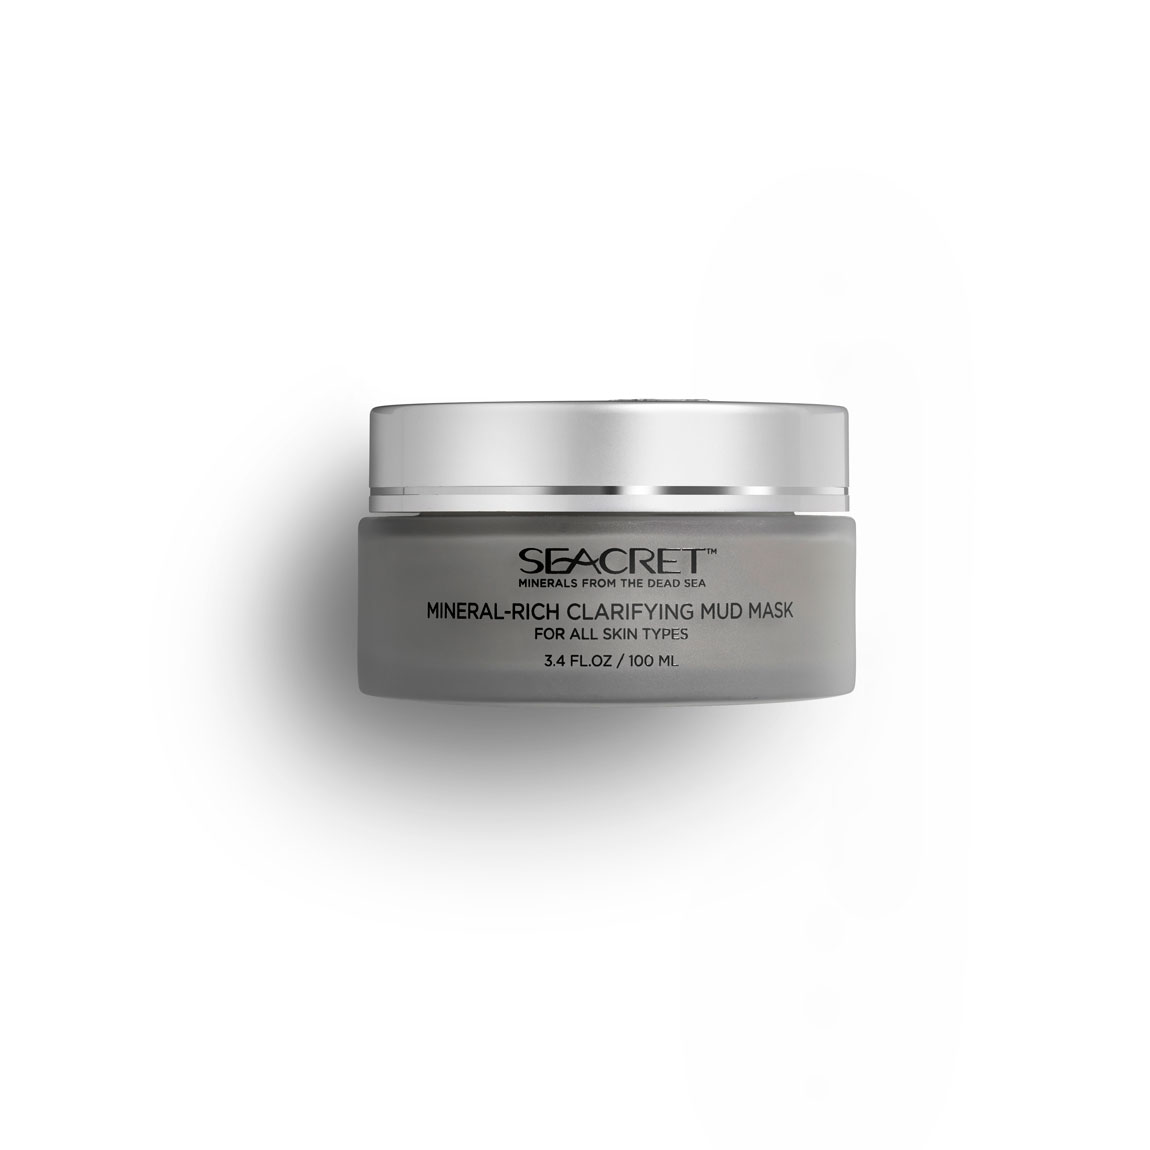 Mineral-Rich Clarifying Mud Mask - Mineral-Rich Clarifying Mud Mask